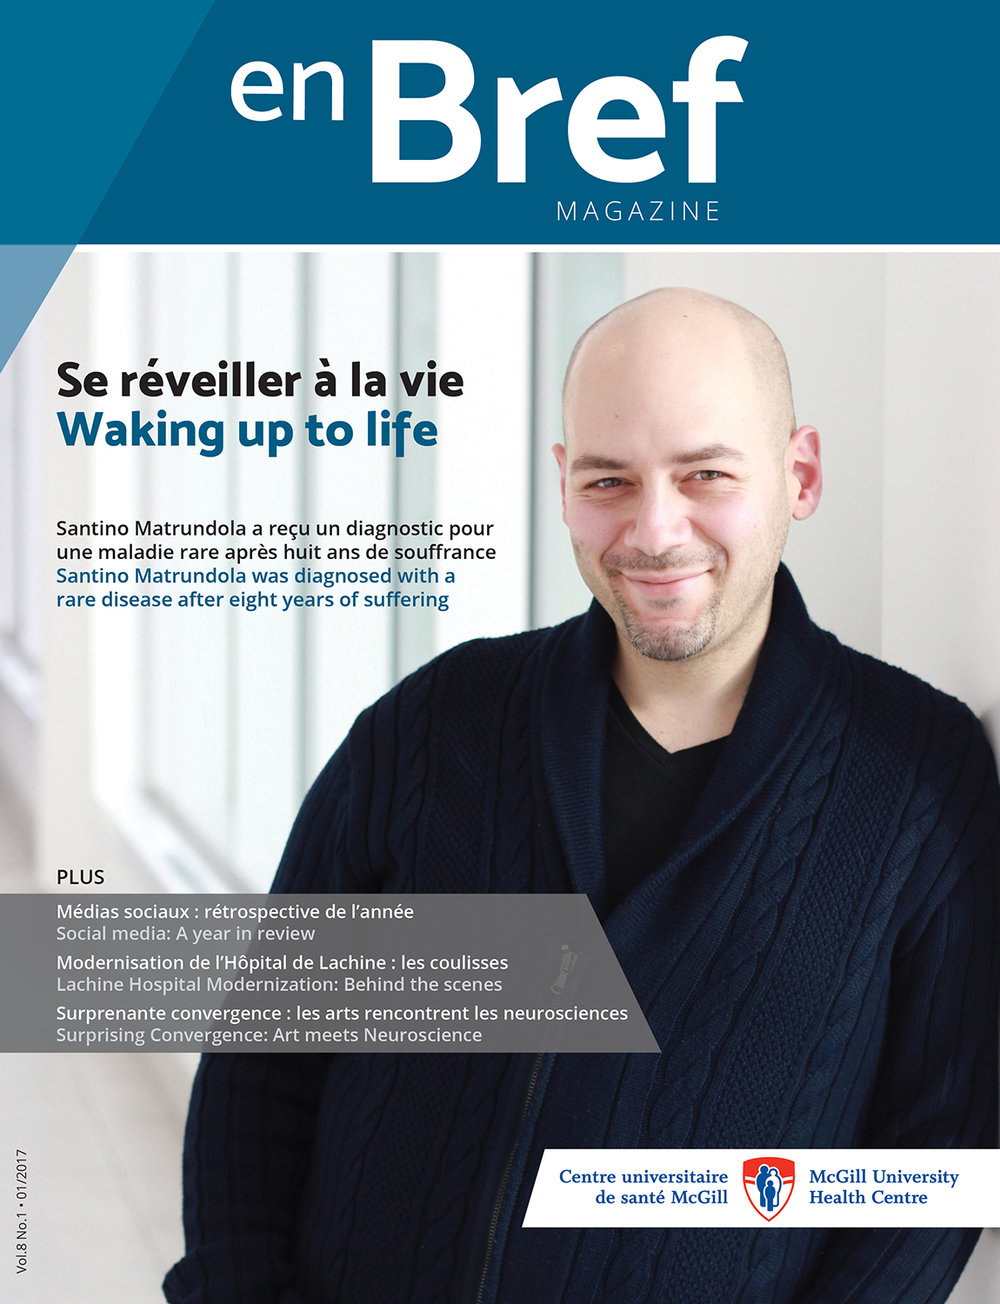 enBref January 2017 cover.jpg